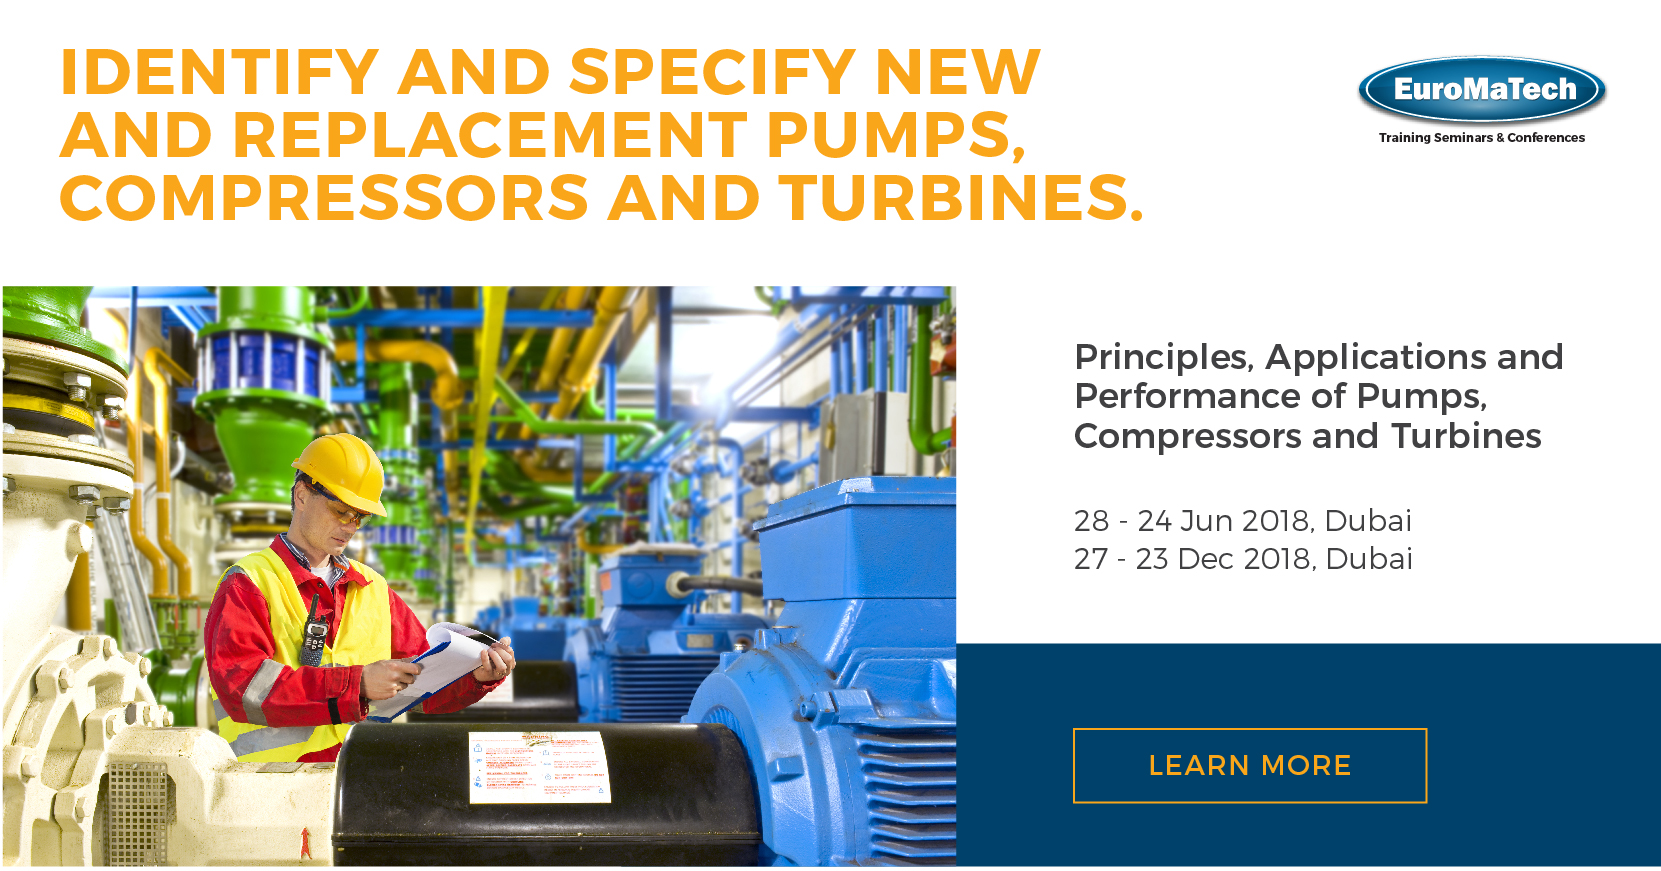 Principles, Applications and Performance of Pumps, Compressors and Turbines Training Course